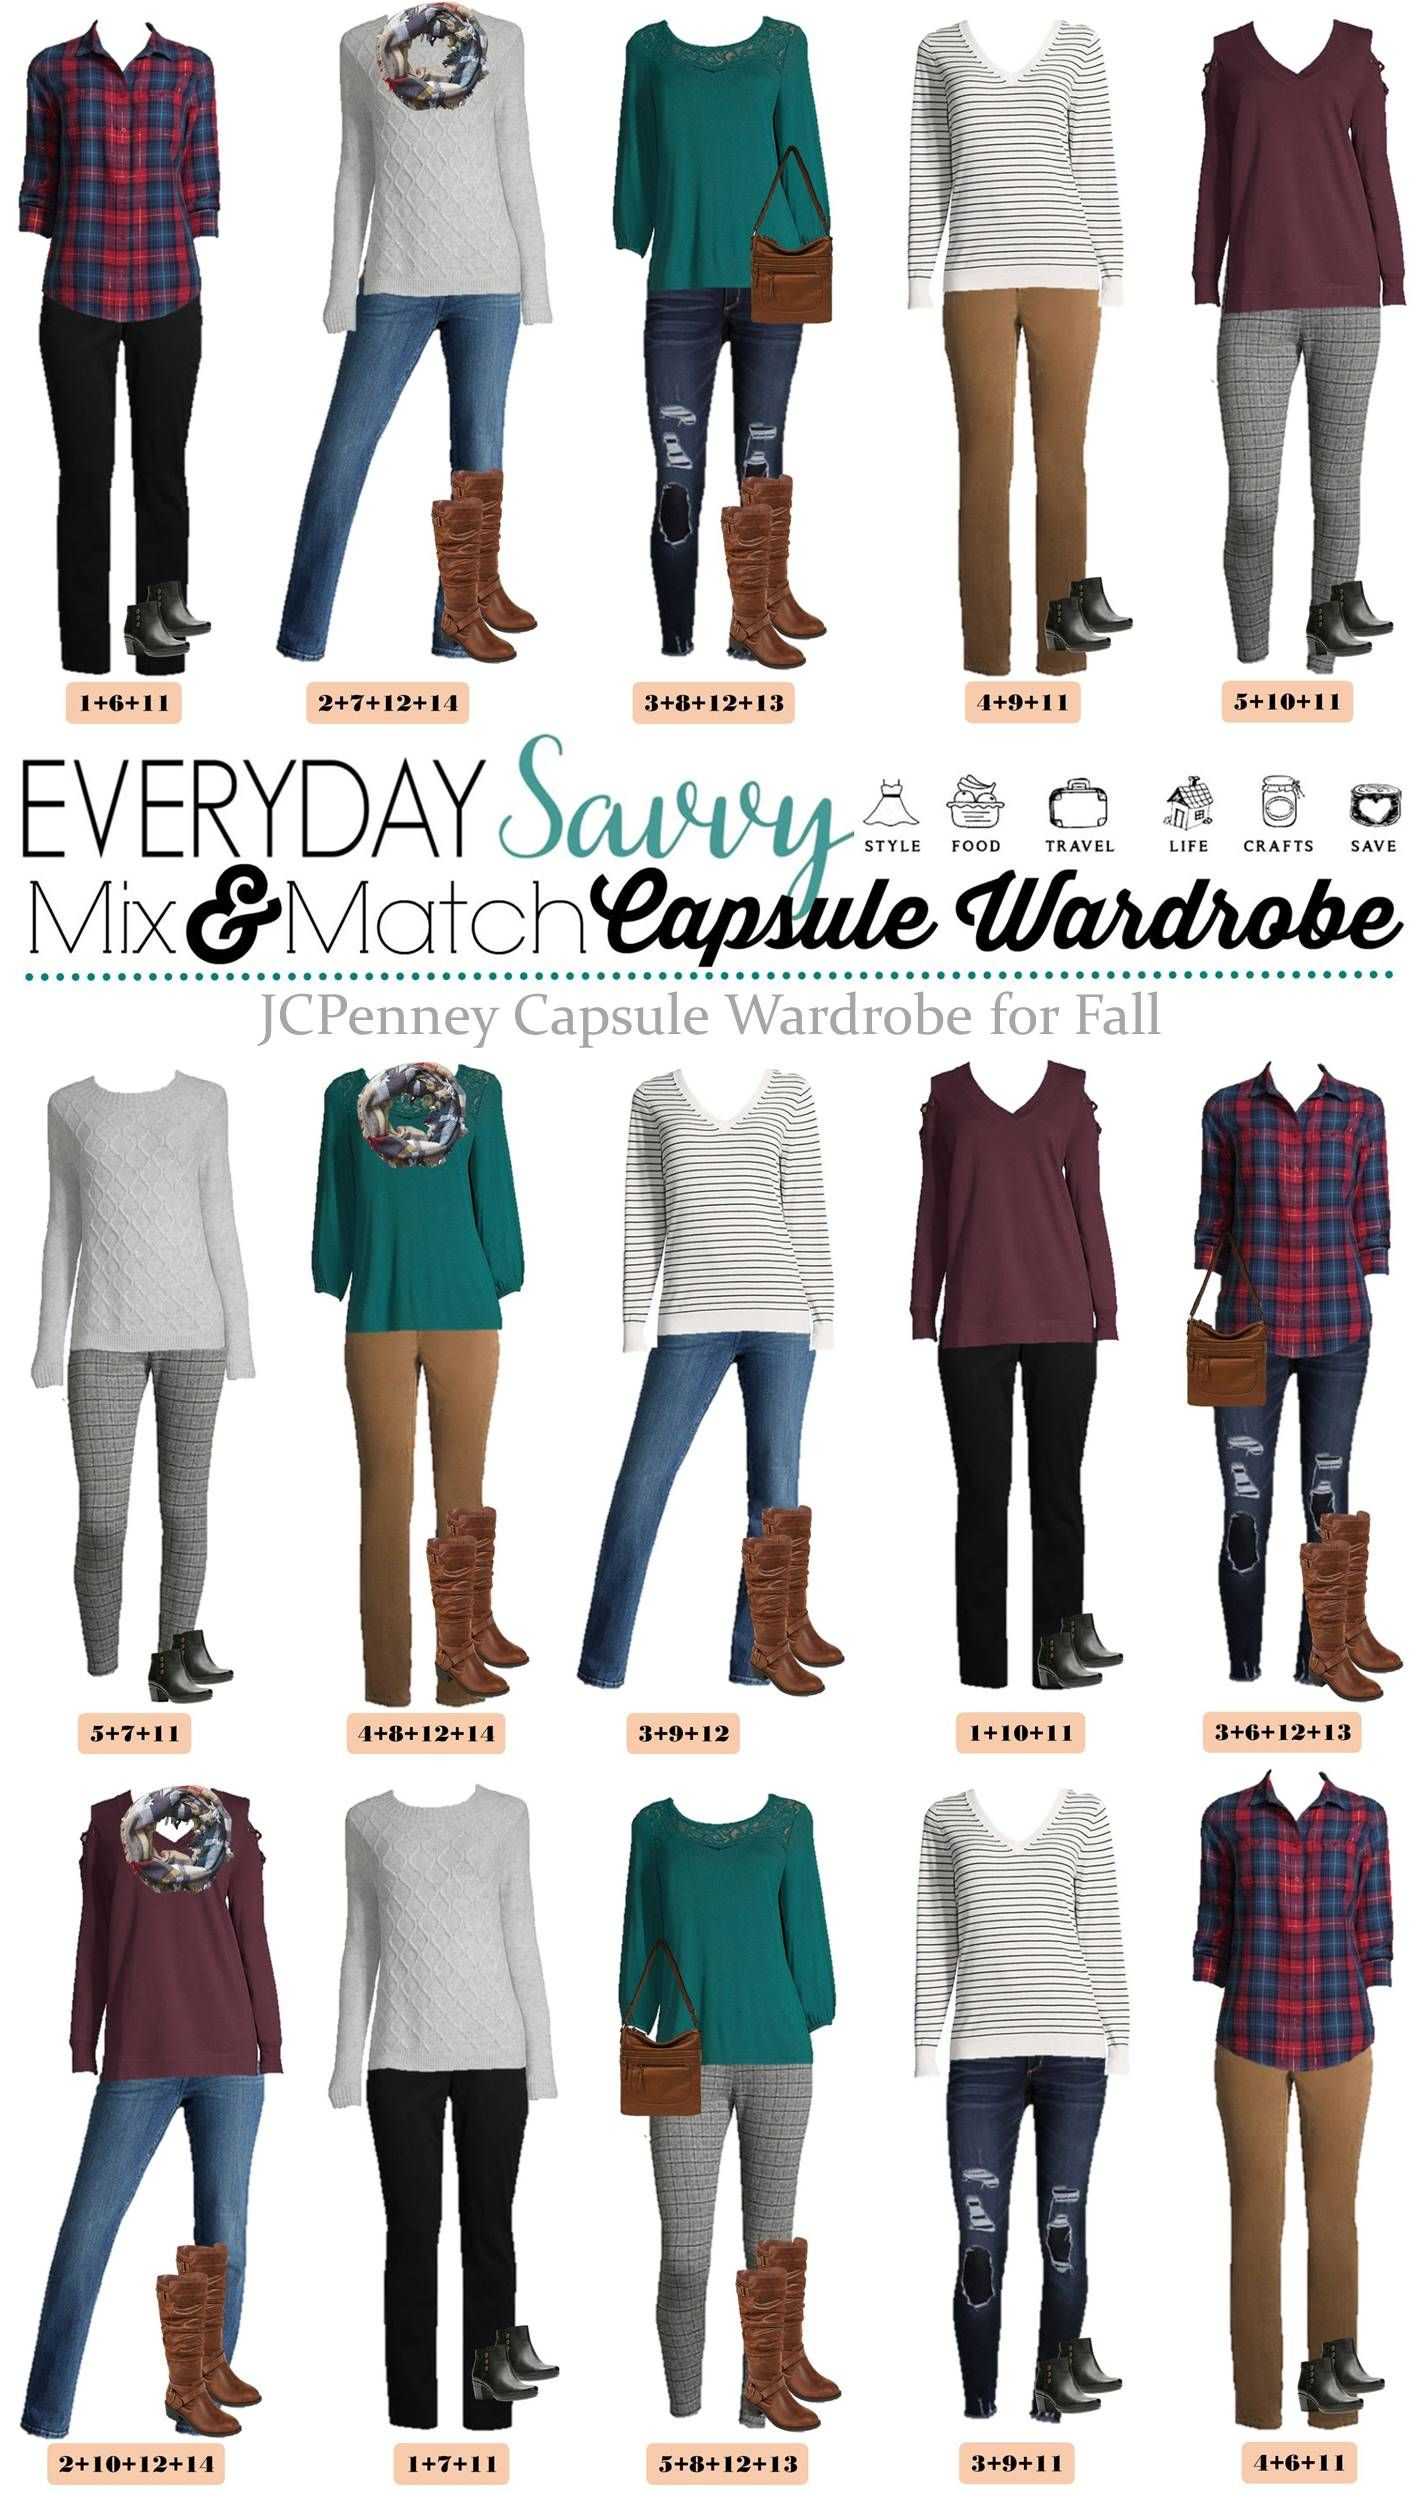 45e344f8377 Fall Casual Outfits - JCPenney Capsule Wardrobe